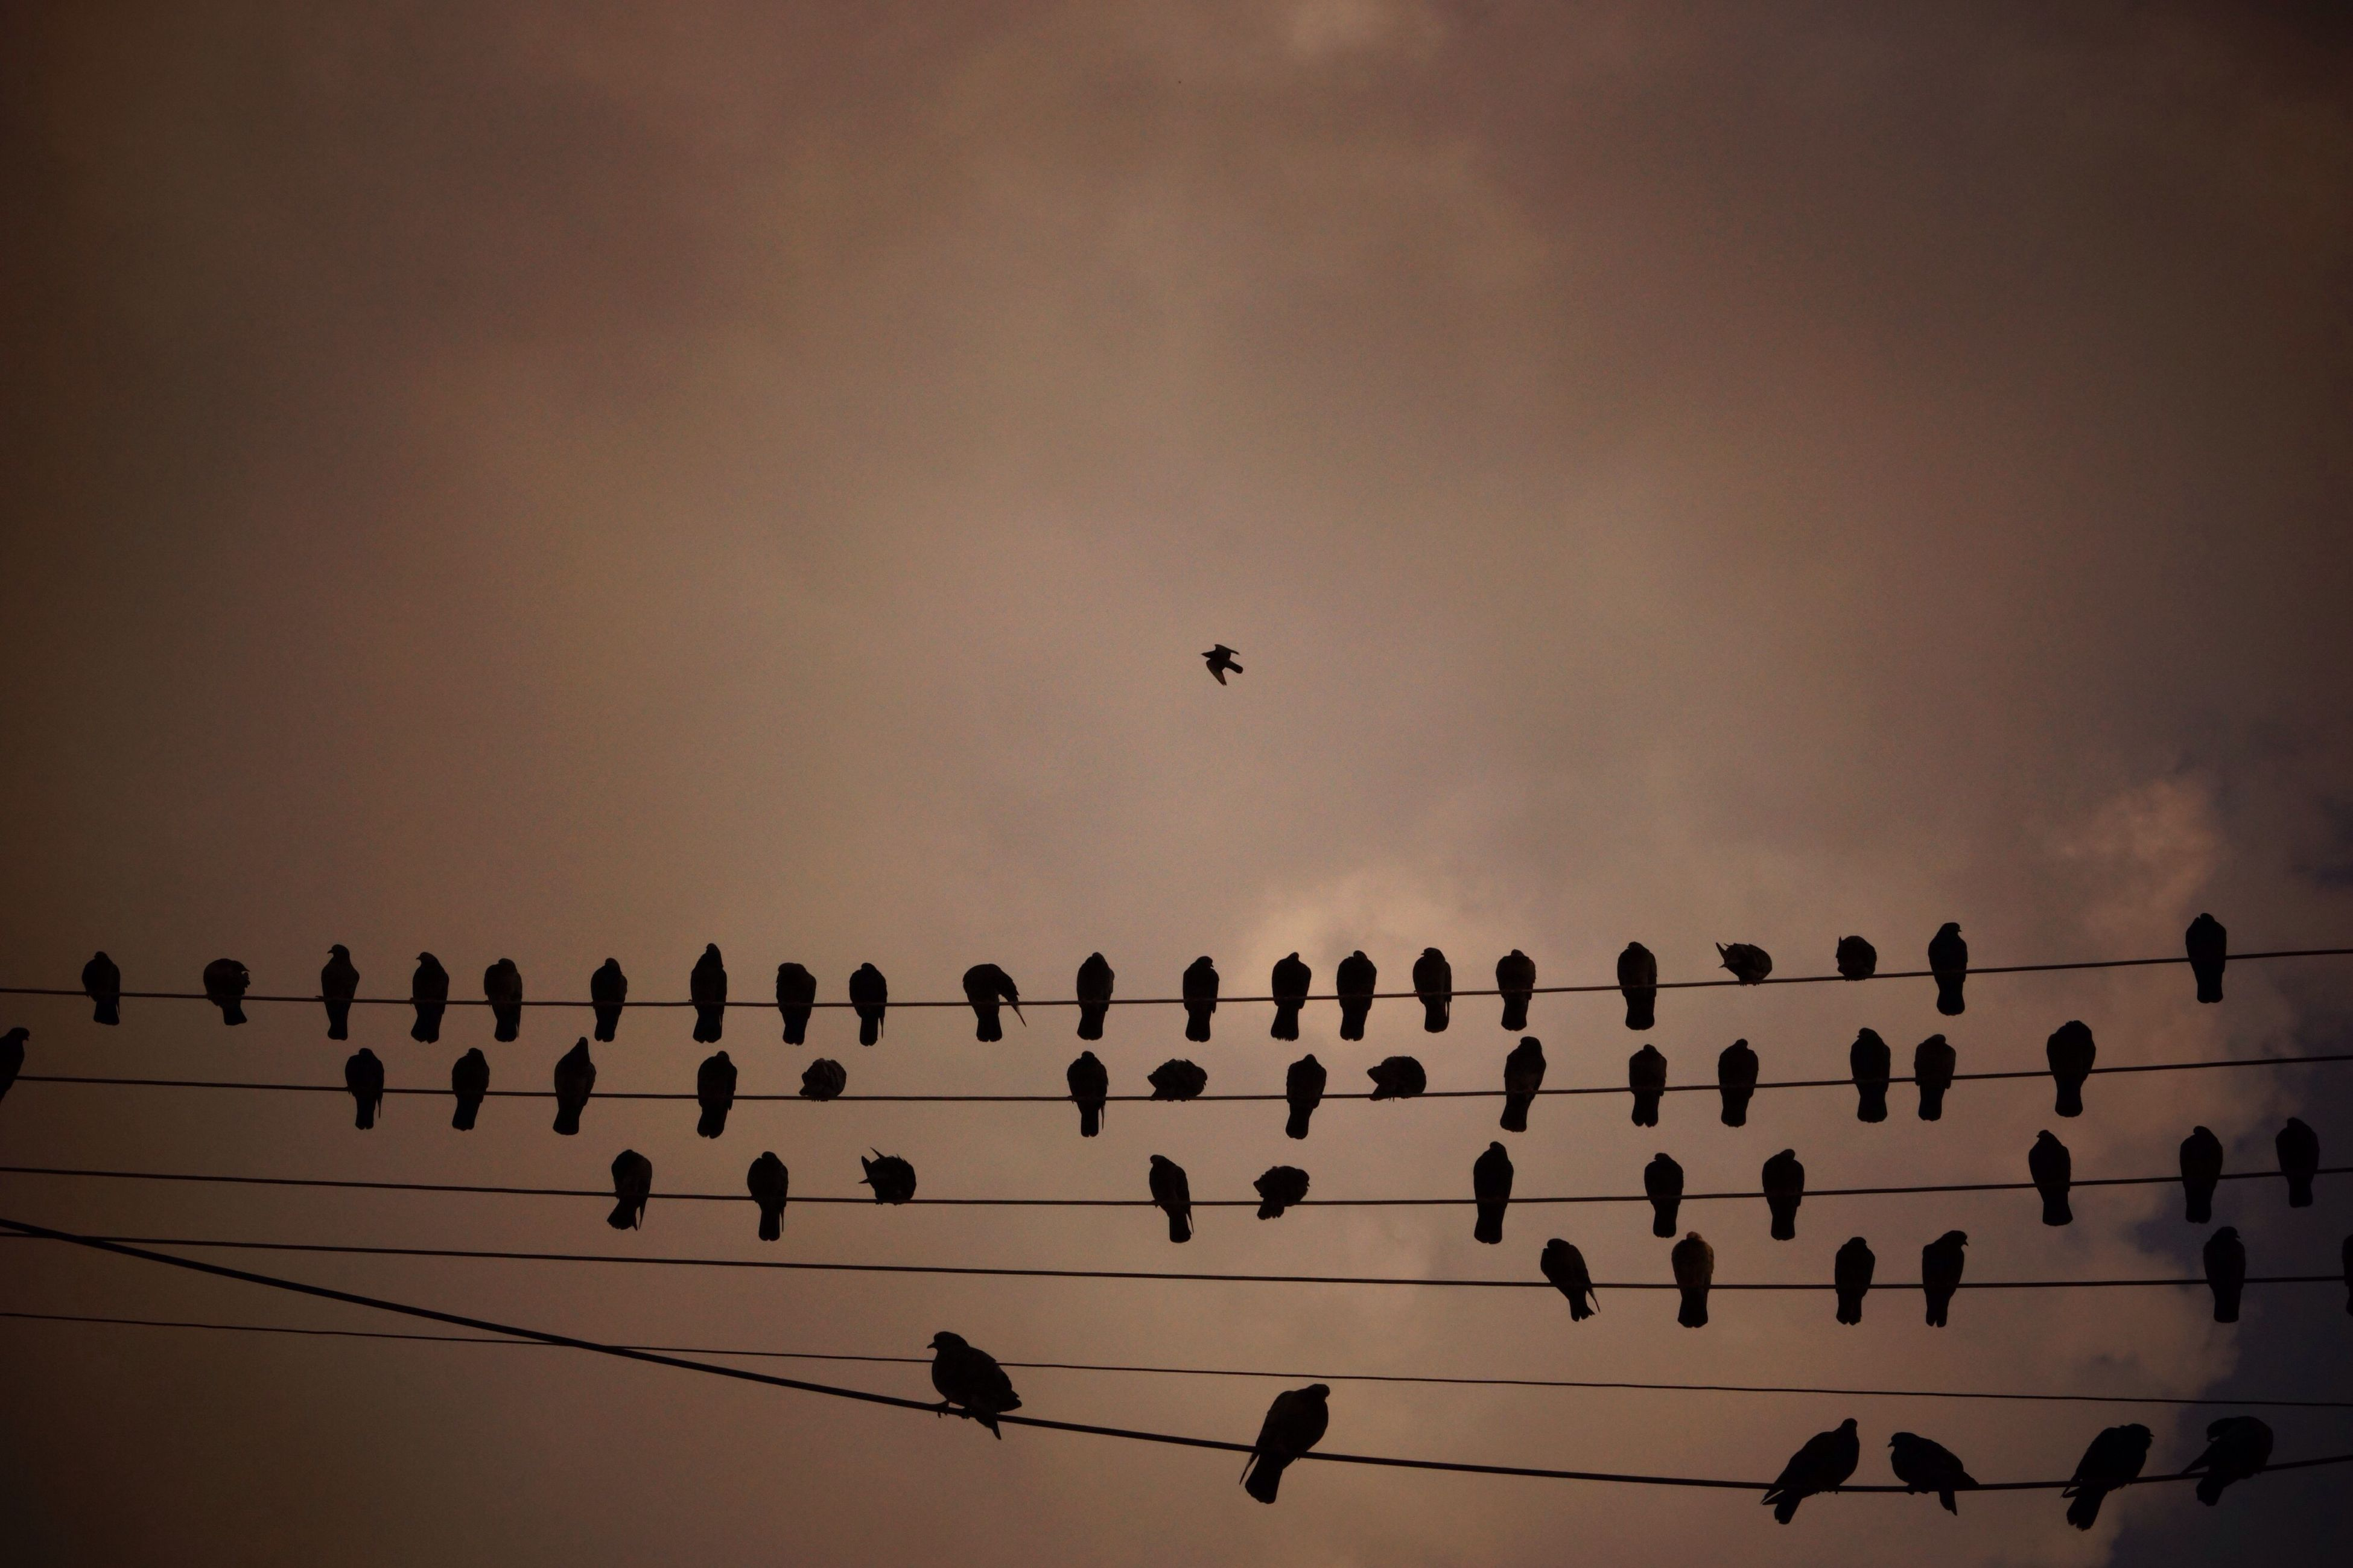 bird, flying, animals in the wild, animal themes, silhouette, animal wildlife, flock of birds, sky, no people, outdoors, spread wings, sunset, low angle view, nature, large group of animals, beauty in nature, togetherness, migrating, day